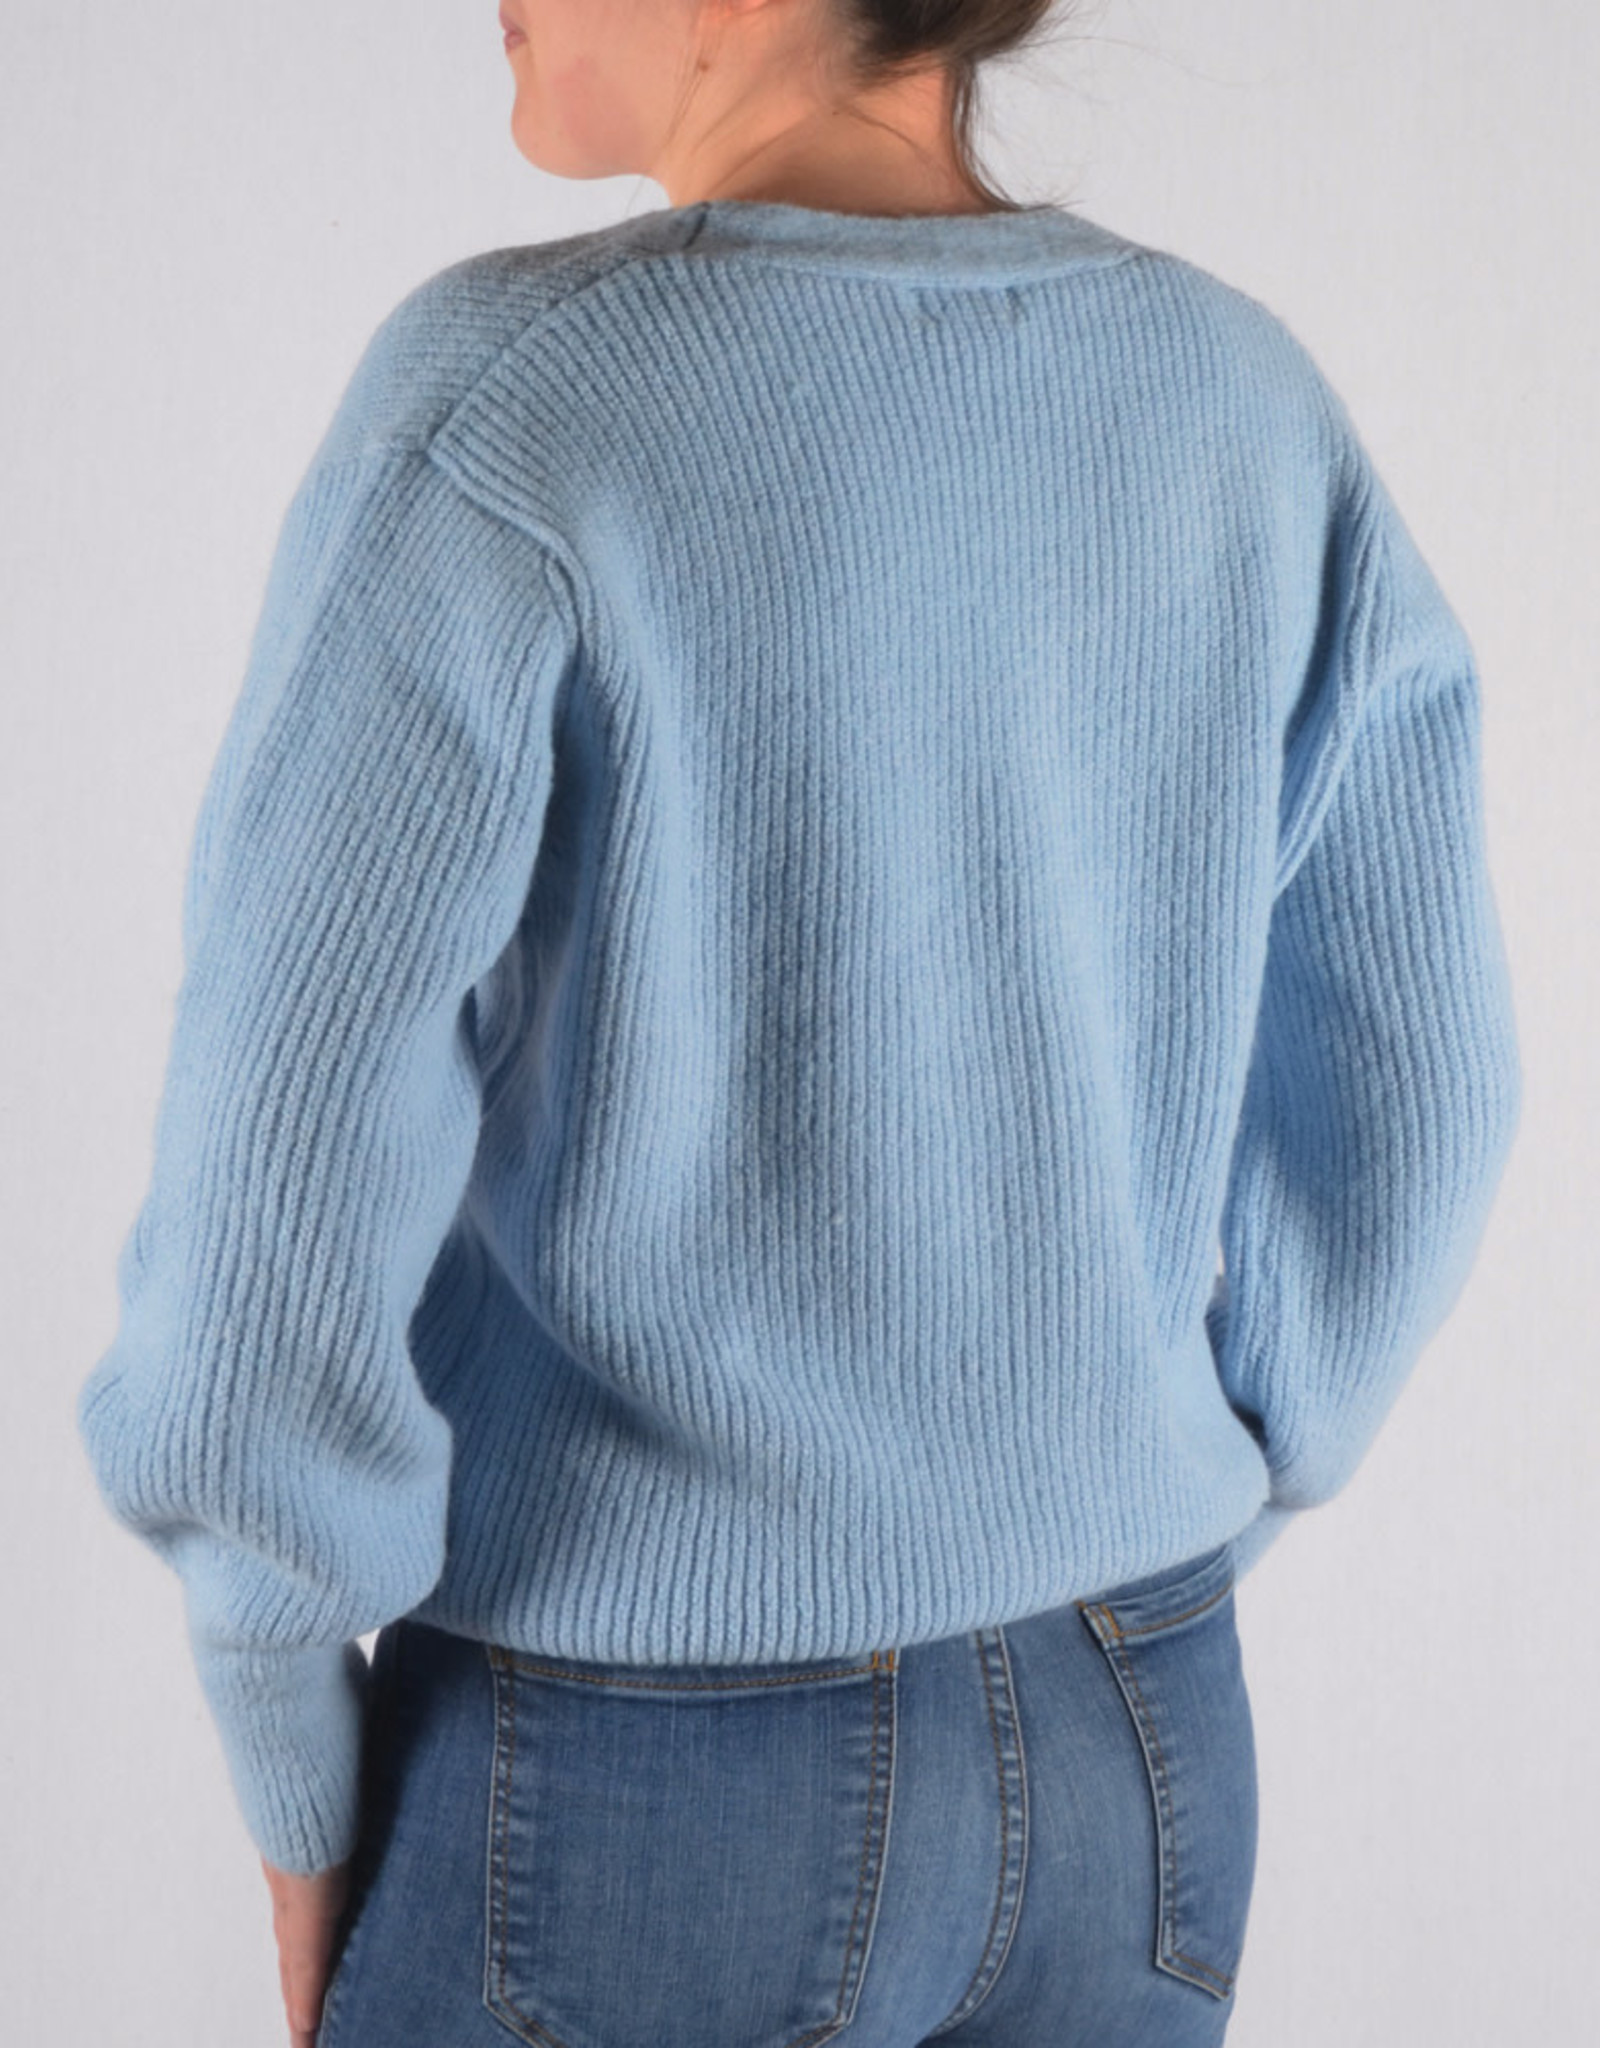 Pastel gilet  baby blue one size